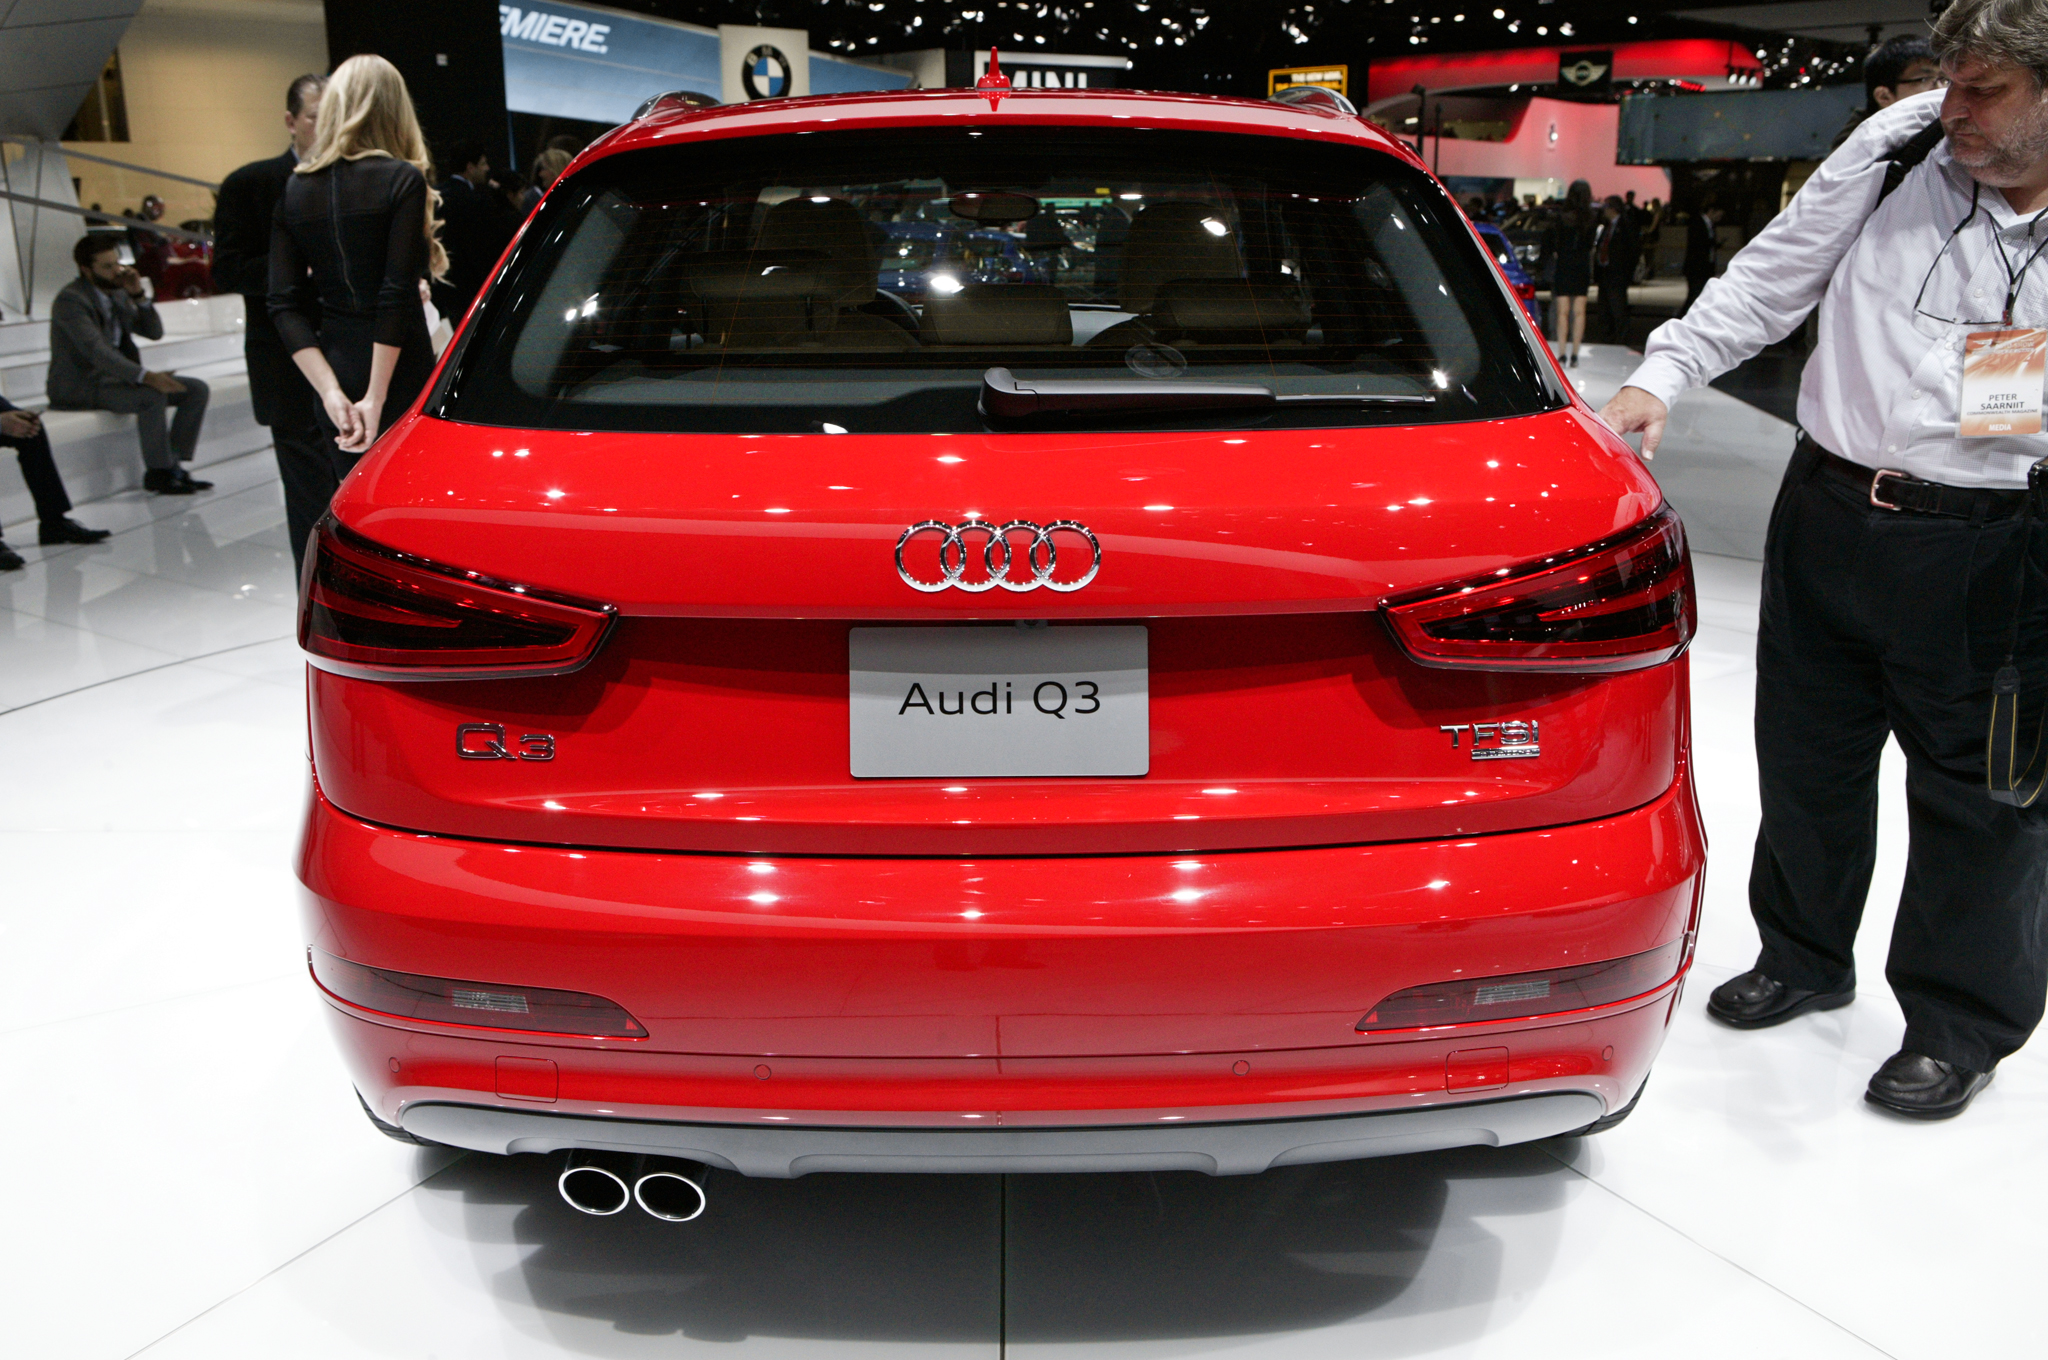 2015 Audi Q3 Rear Lamp (Photo 11 of 21)